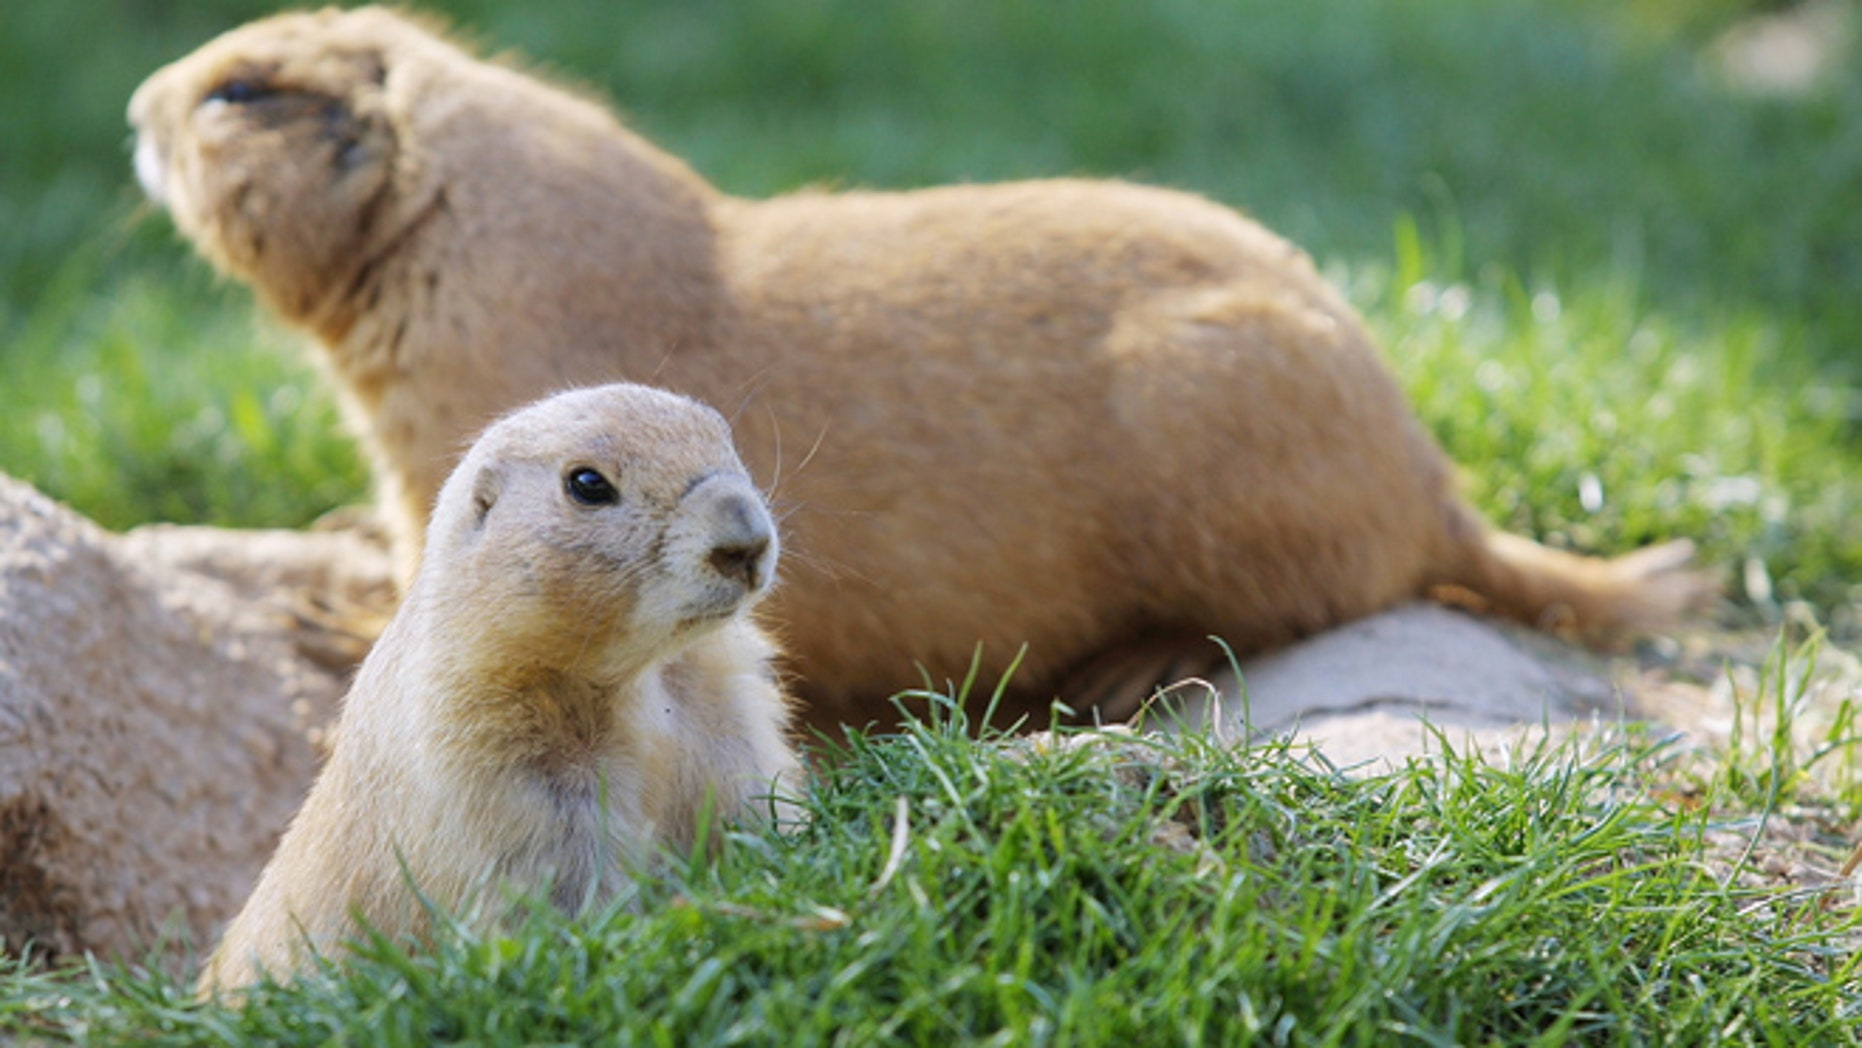 A pair of prairie dogs are pictured on display at the Washington National Zoo.